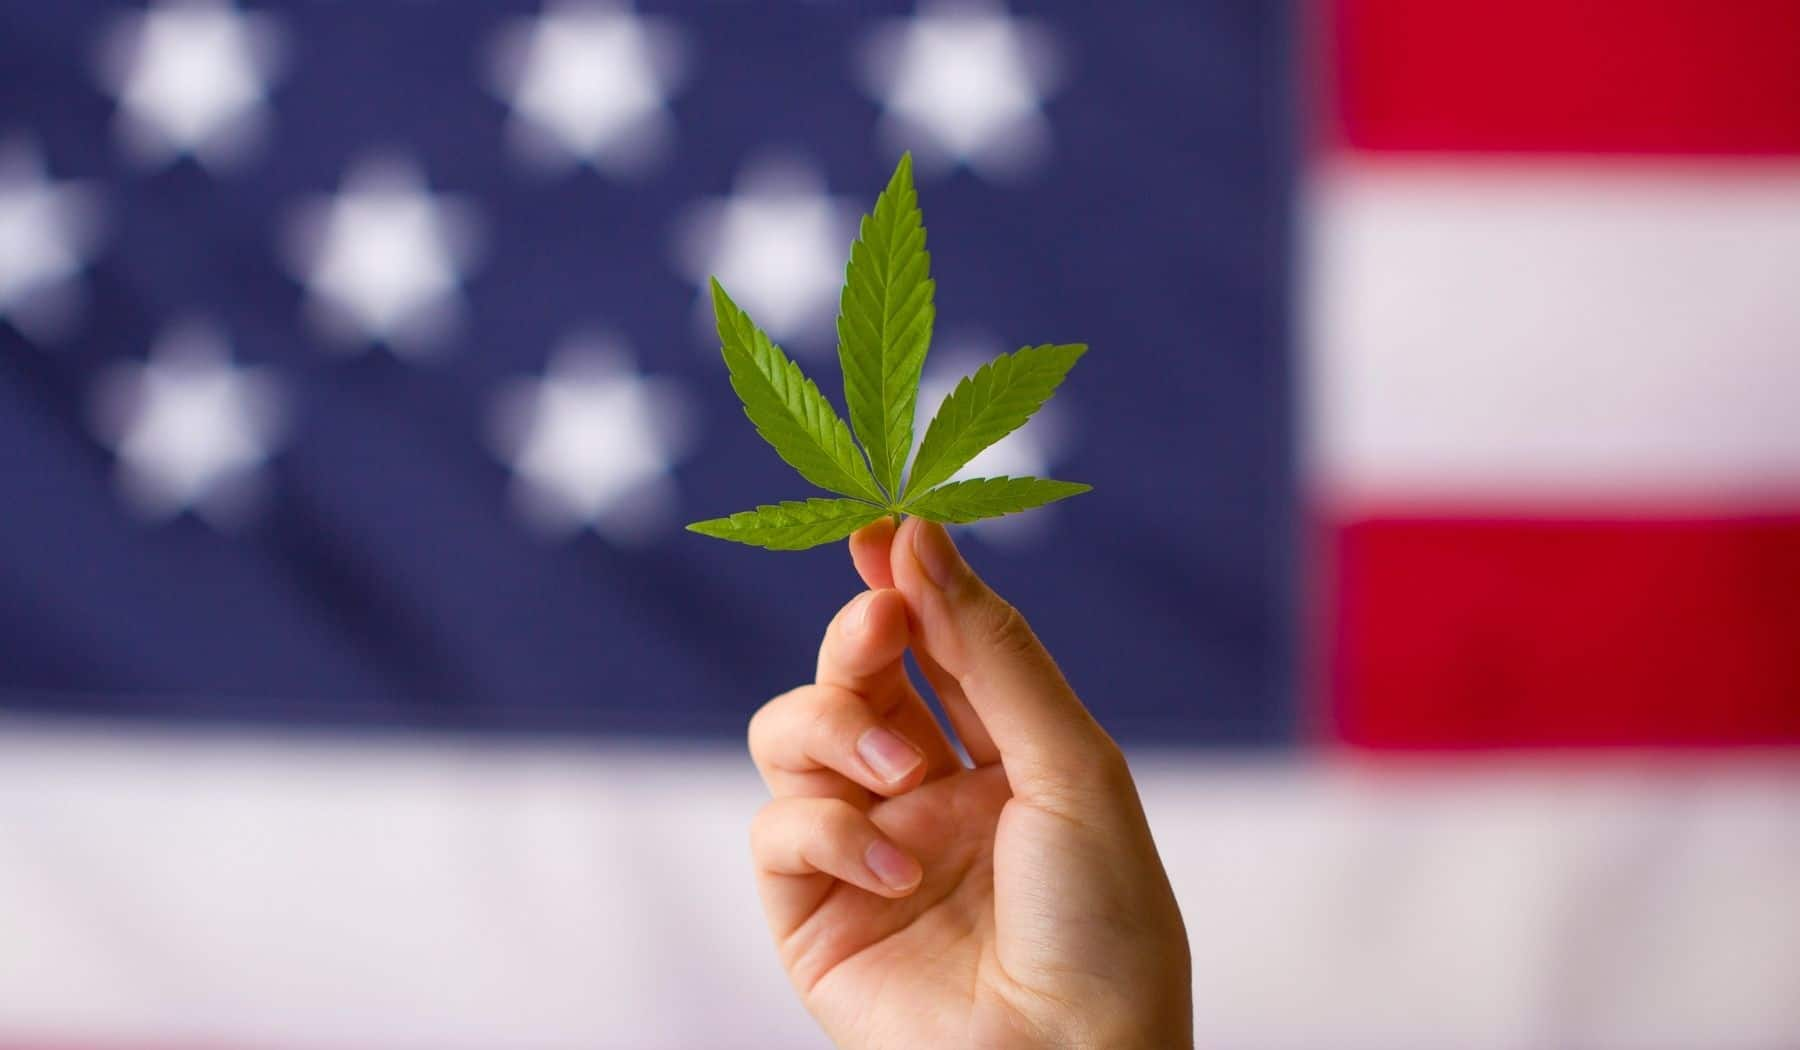 Woman holding up weed leaf in front of US flag